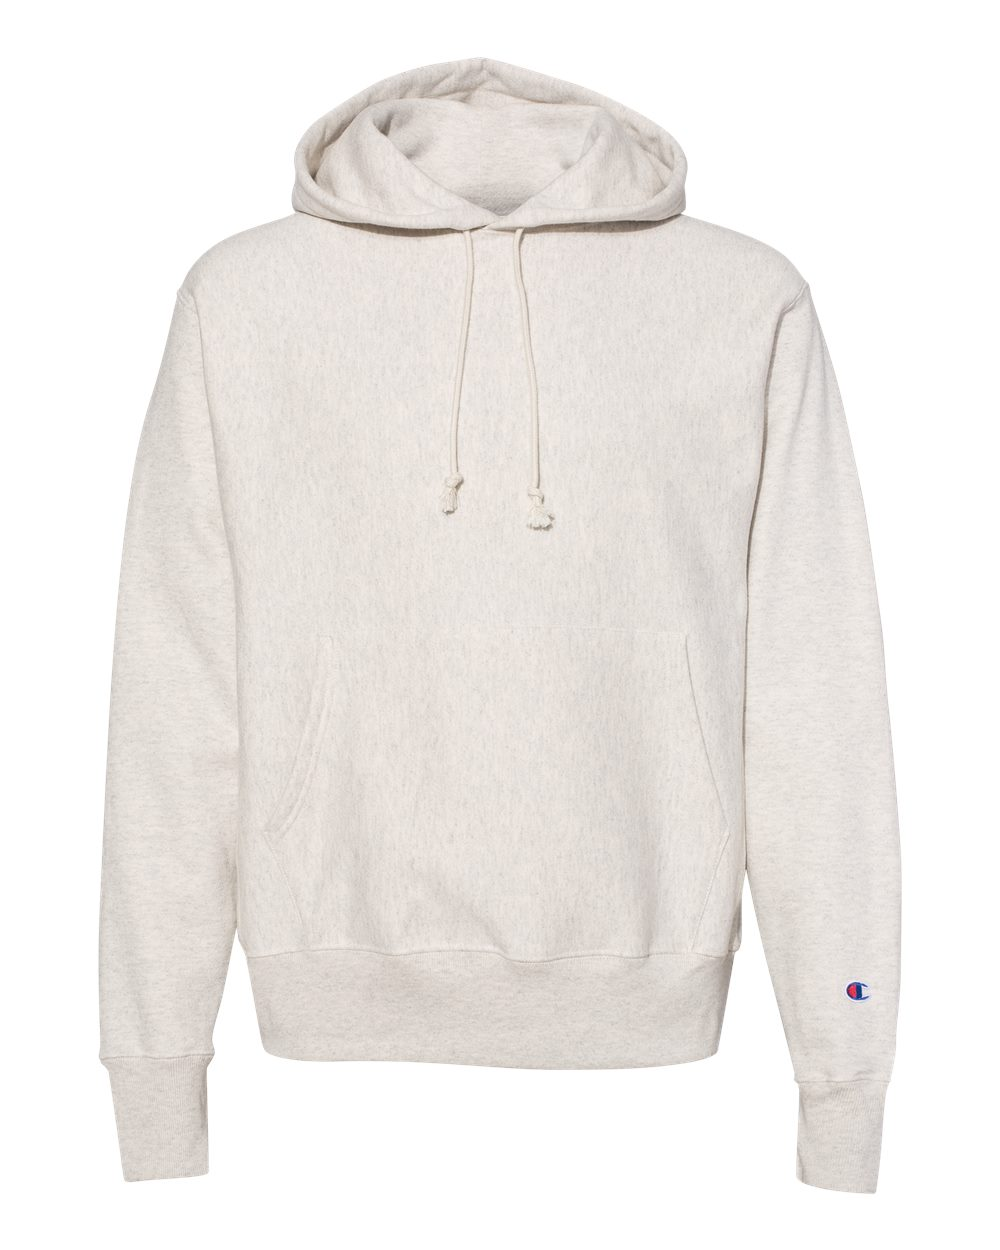 Champion-Mens-Reverse-Weave-Hooded-Pullover-Sweatshirt-S101-up-to-3XL thumbnail 33